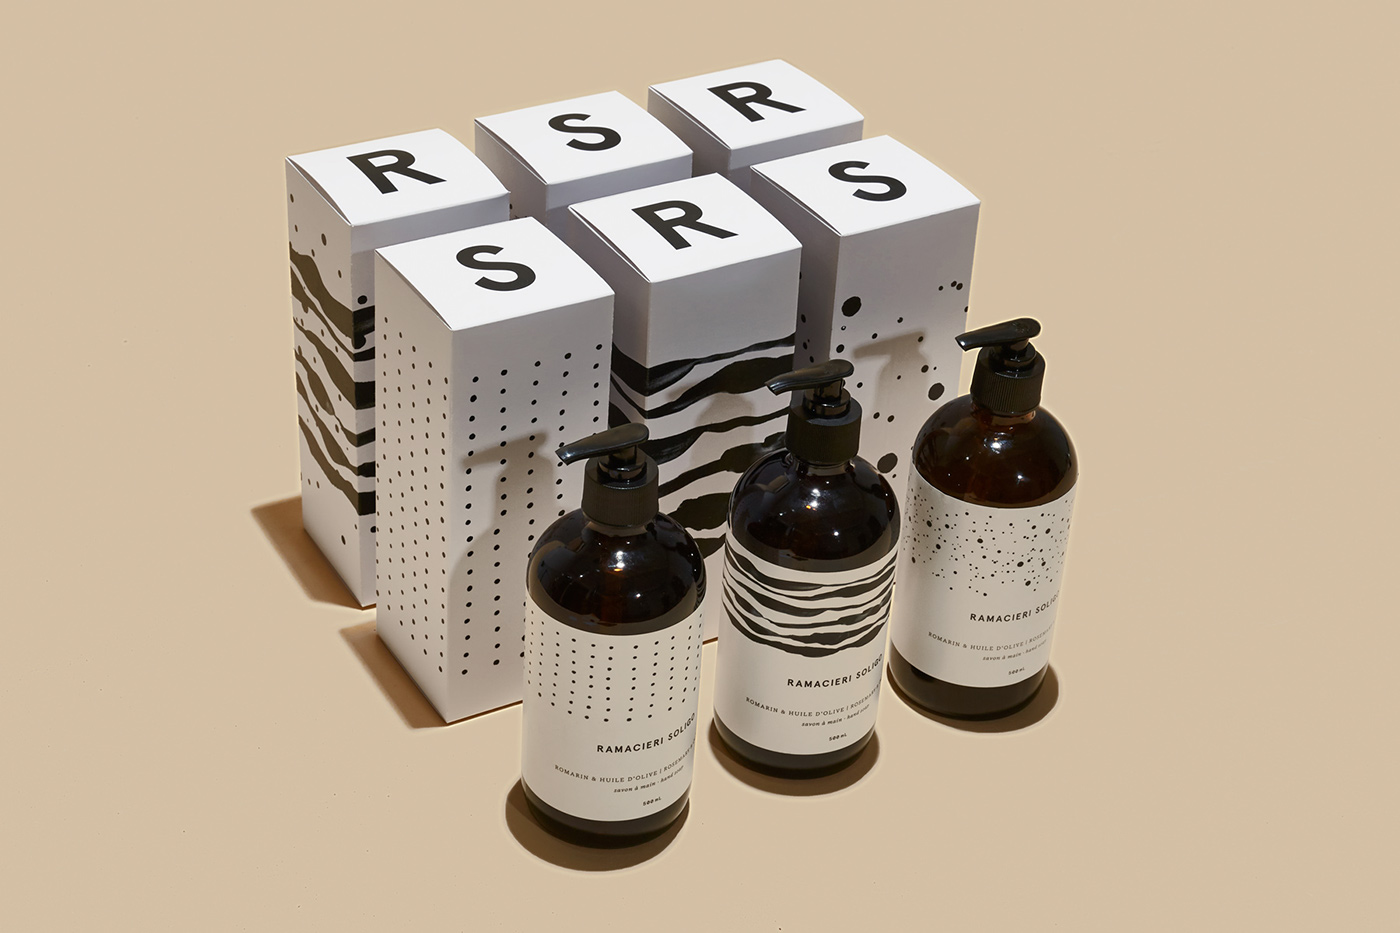 soap,bottle,Label,Painted,texture,graphic,series,minimalist,Authentic